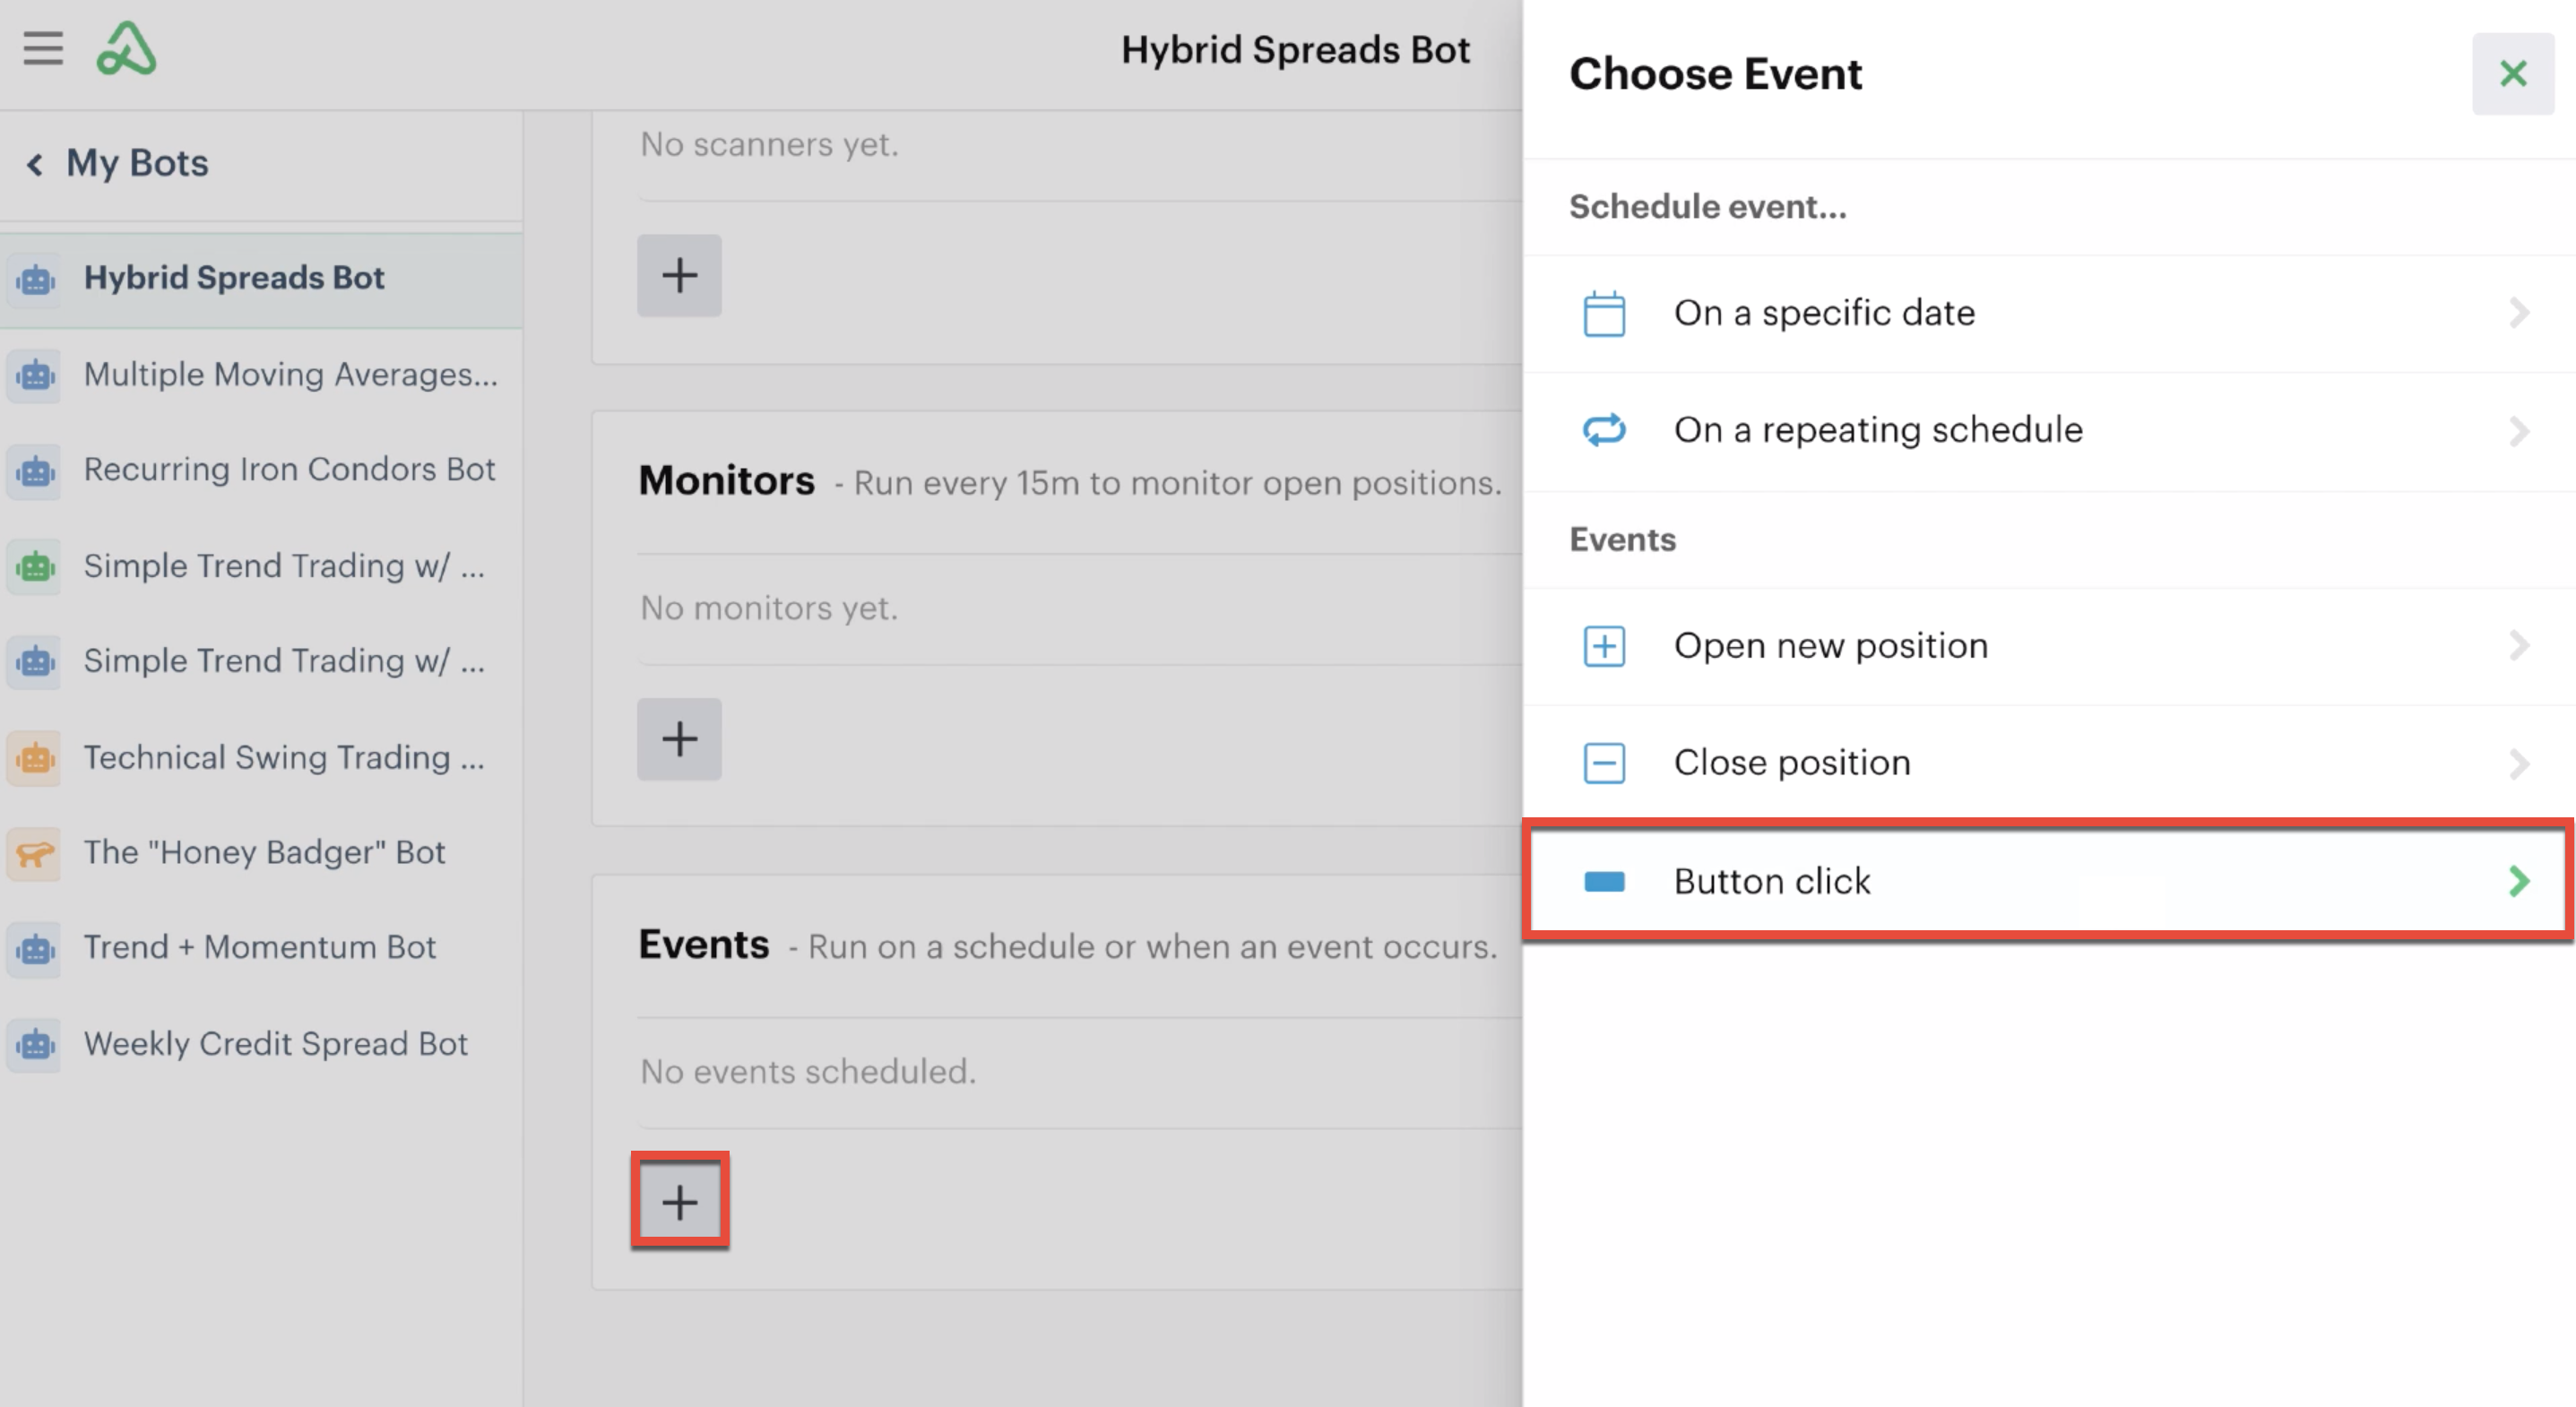 Add a button click in automations tab